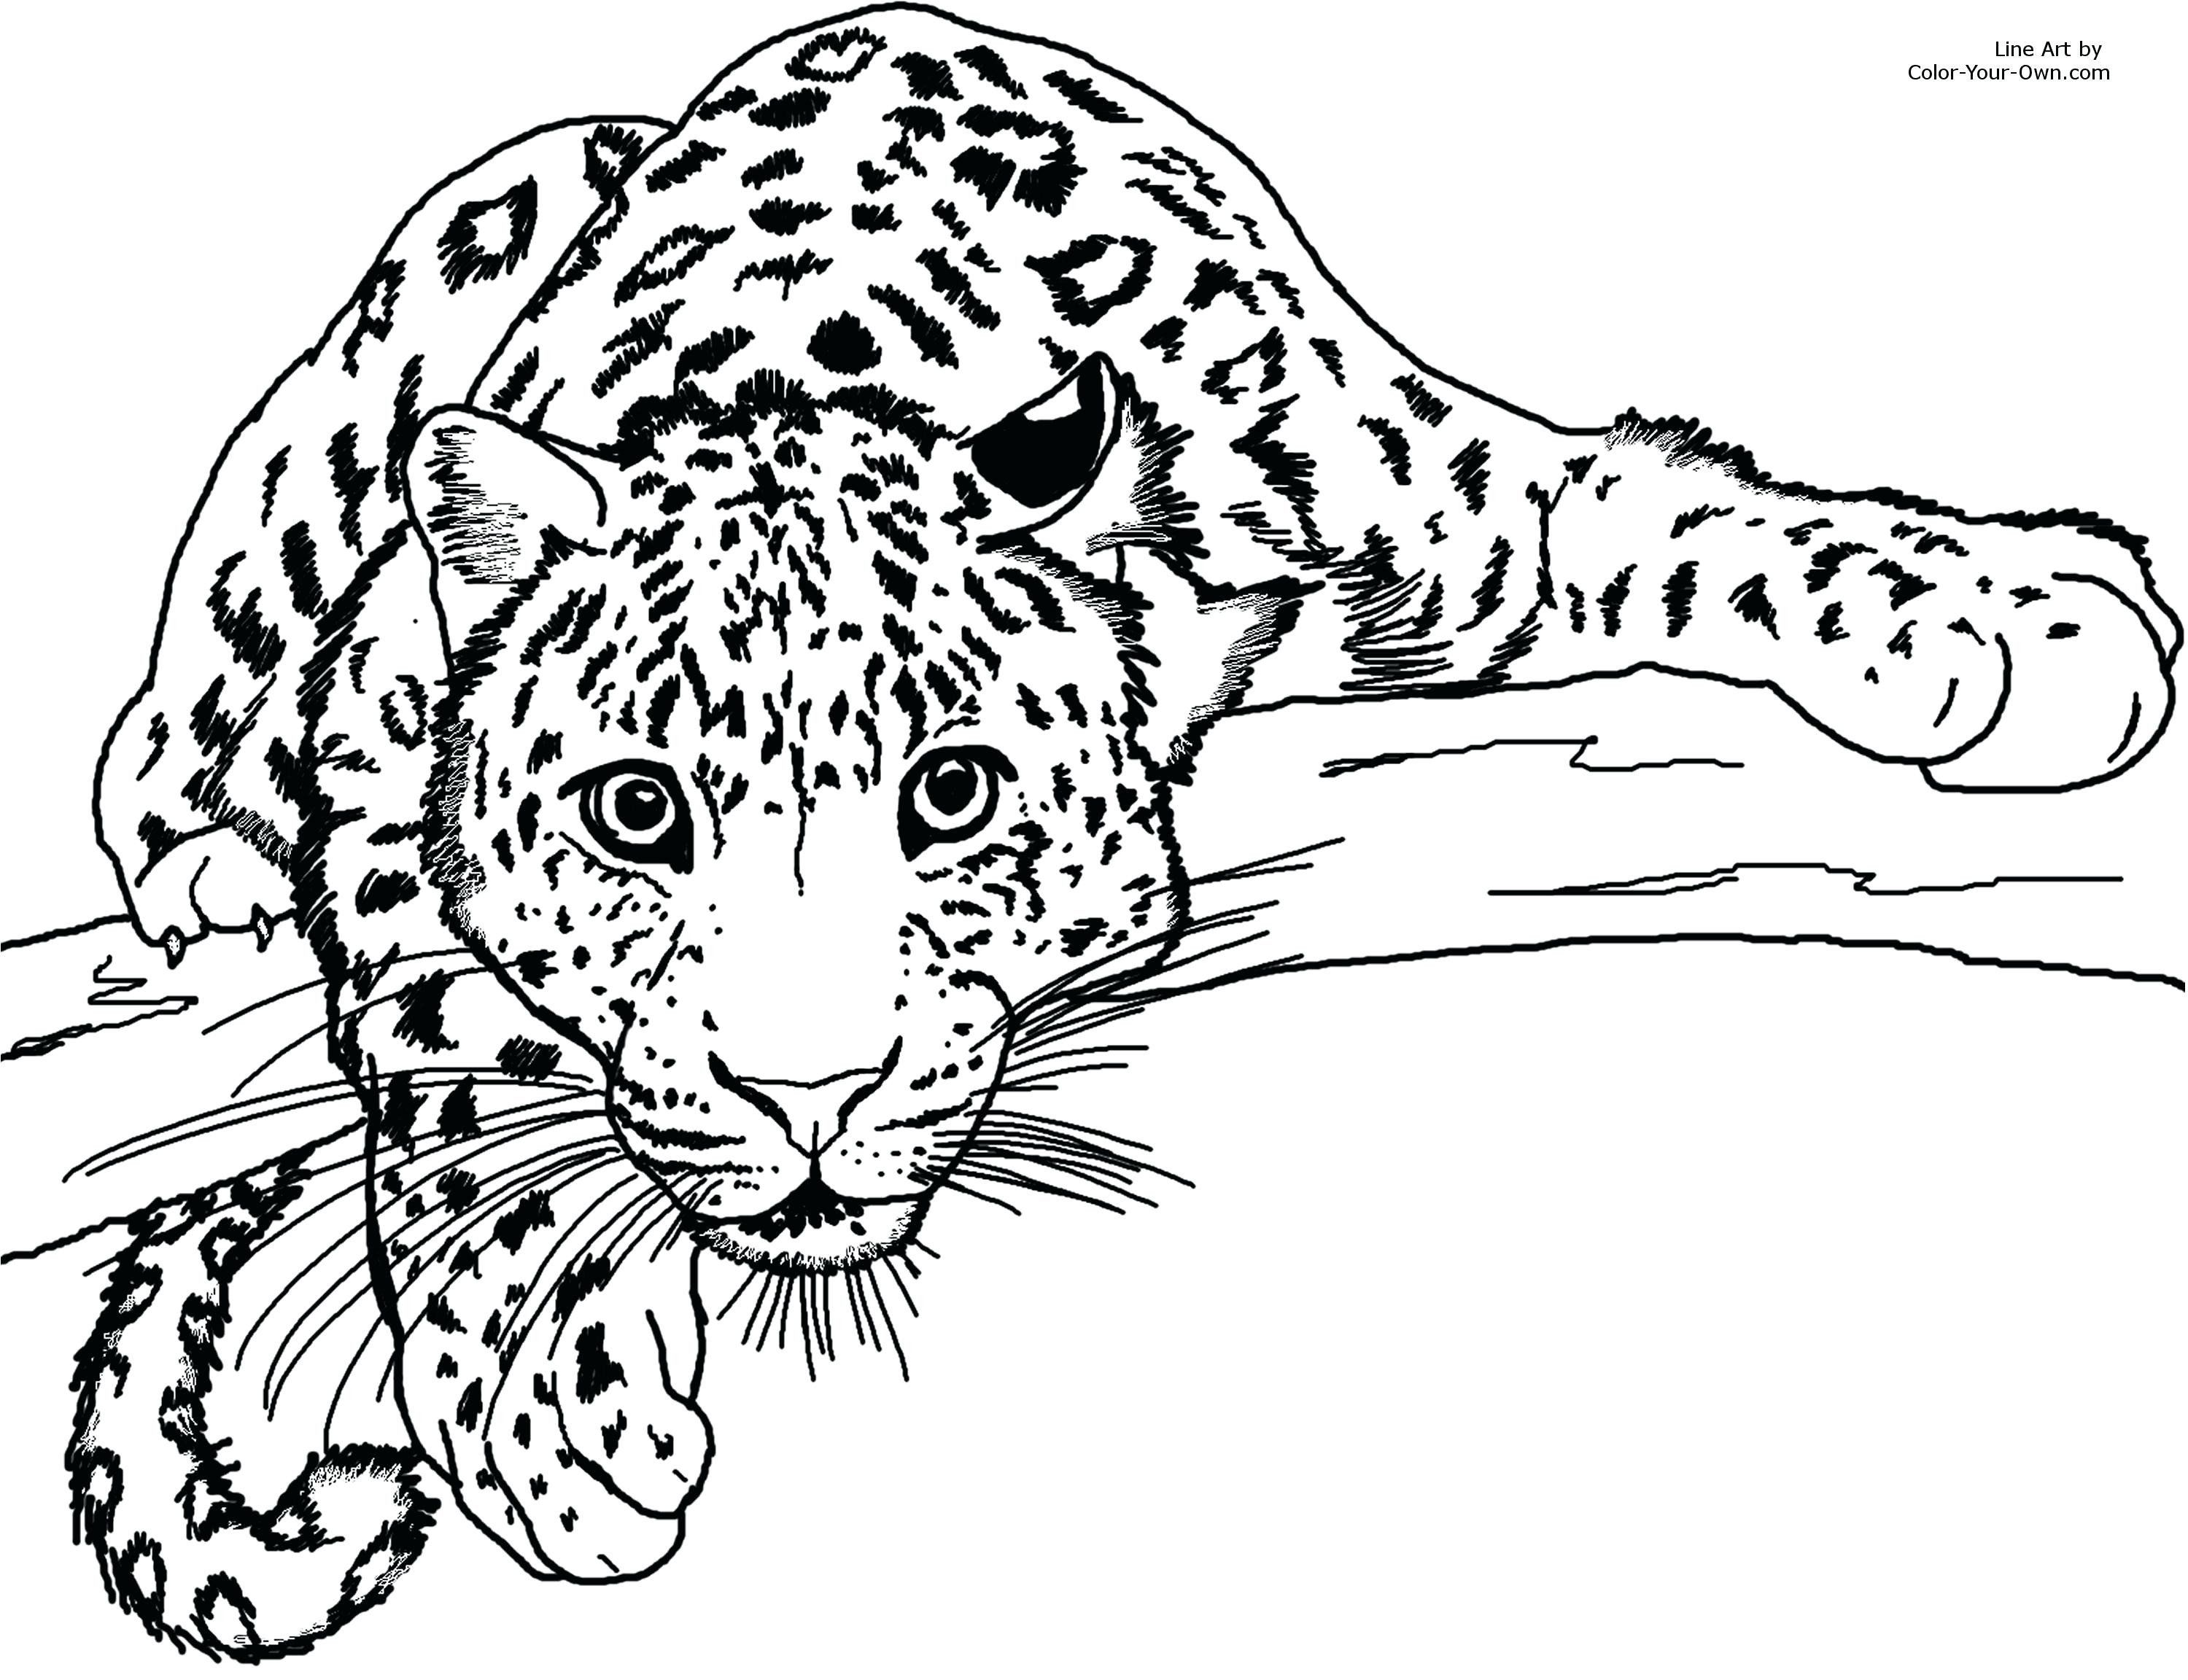 Pin On Coloring Pages Ideas For Kids And Adult